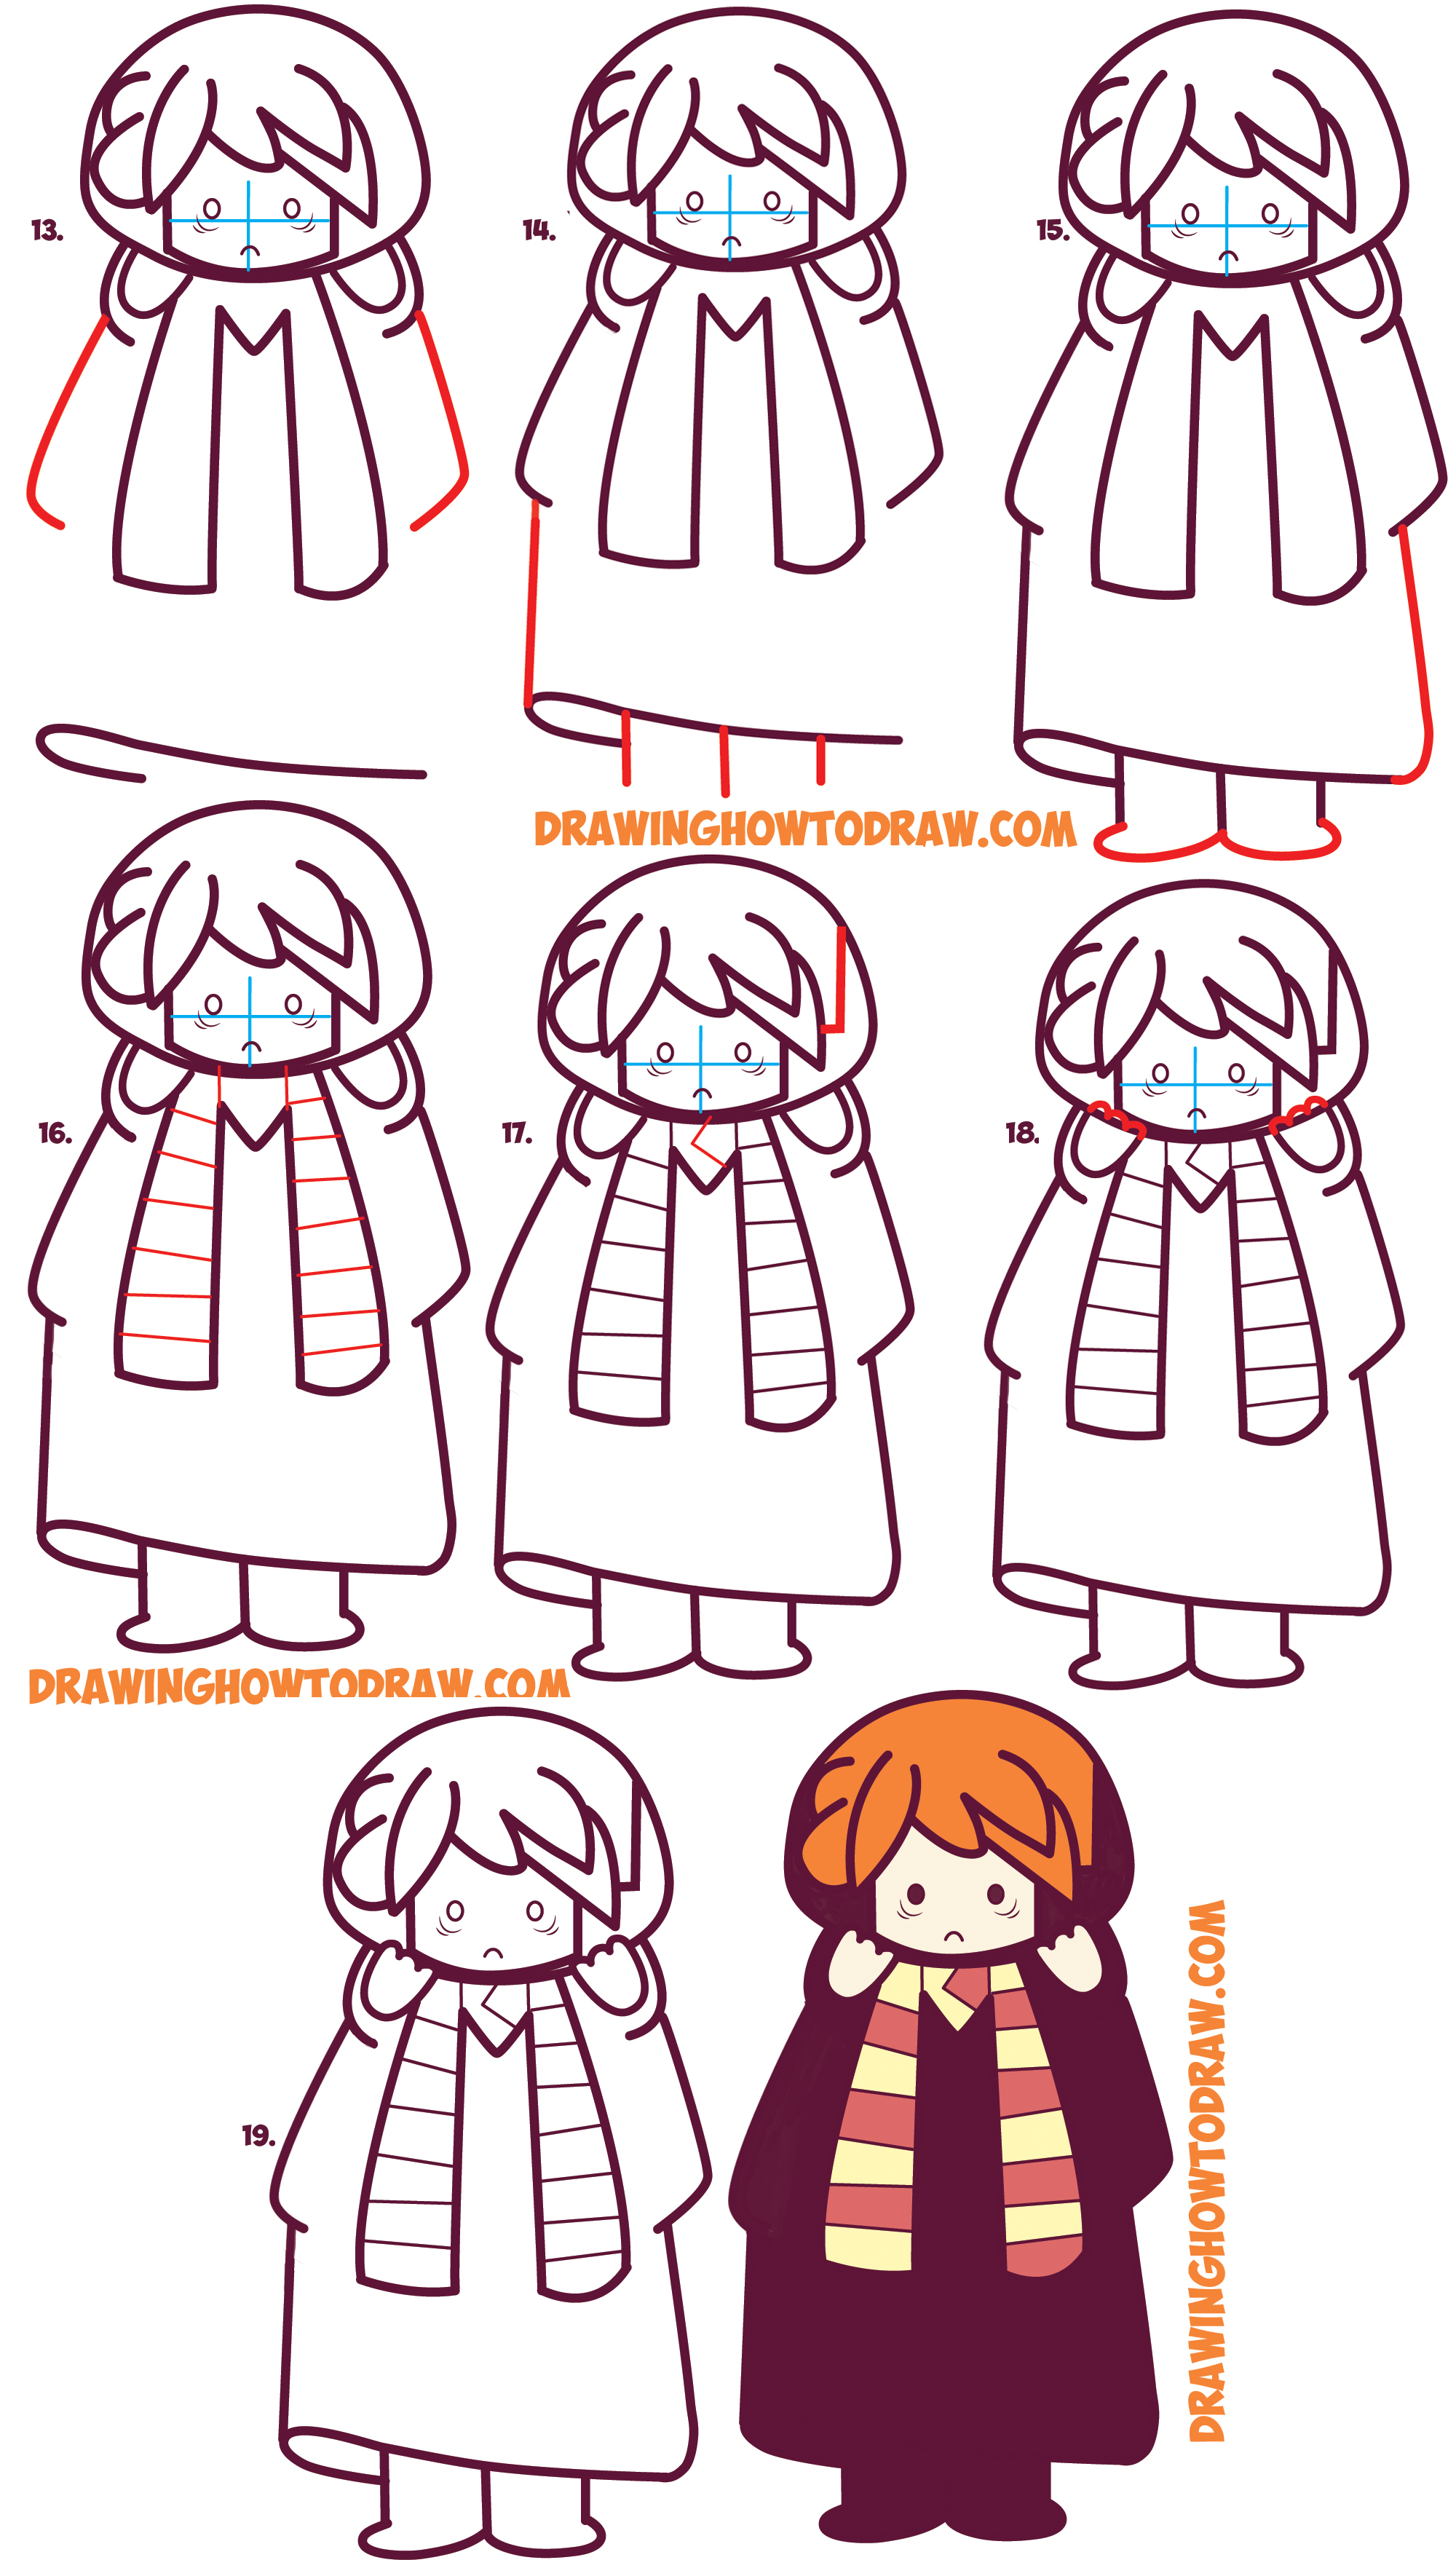 Learn How to Draw Cute Ron Weasley from Harry Potter (Chibi / Kawaii) Simple Steps Drawing Lesson for Kids